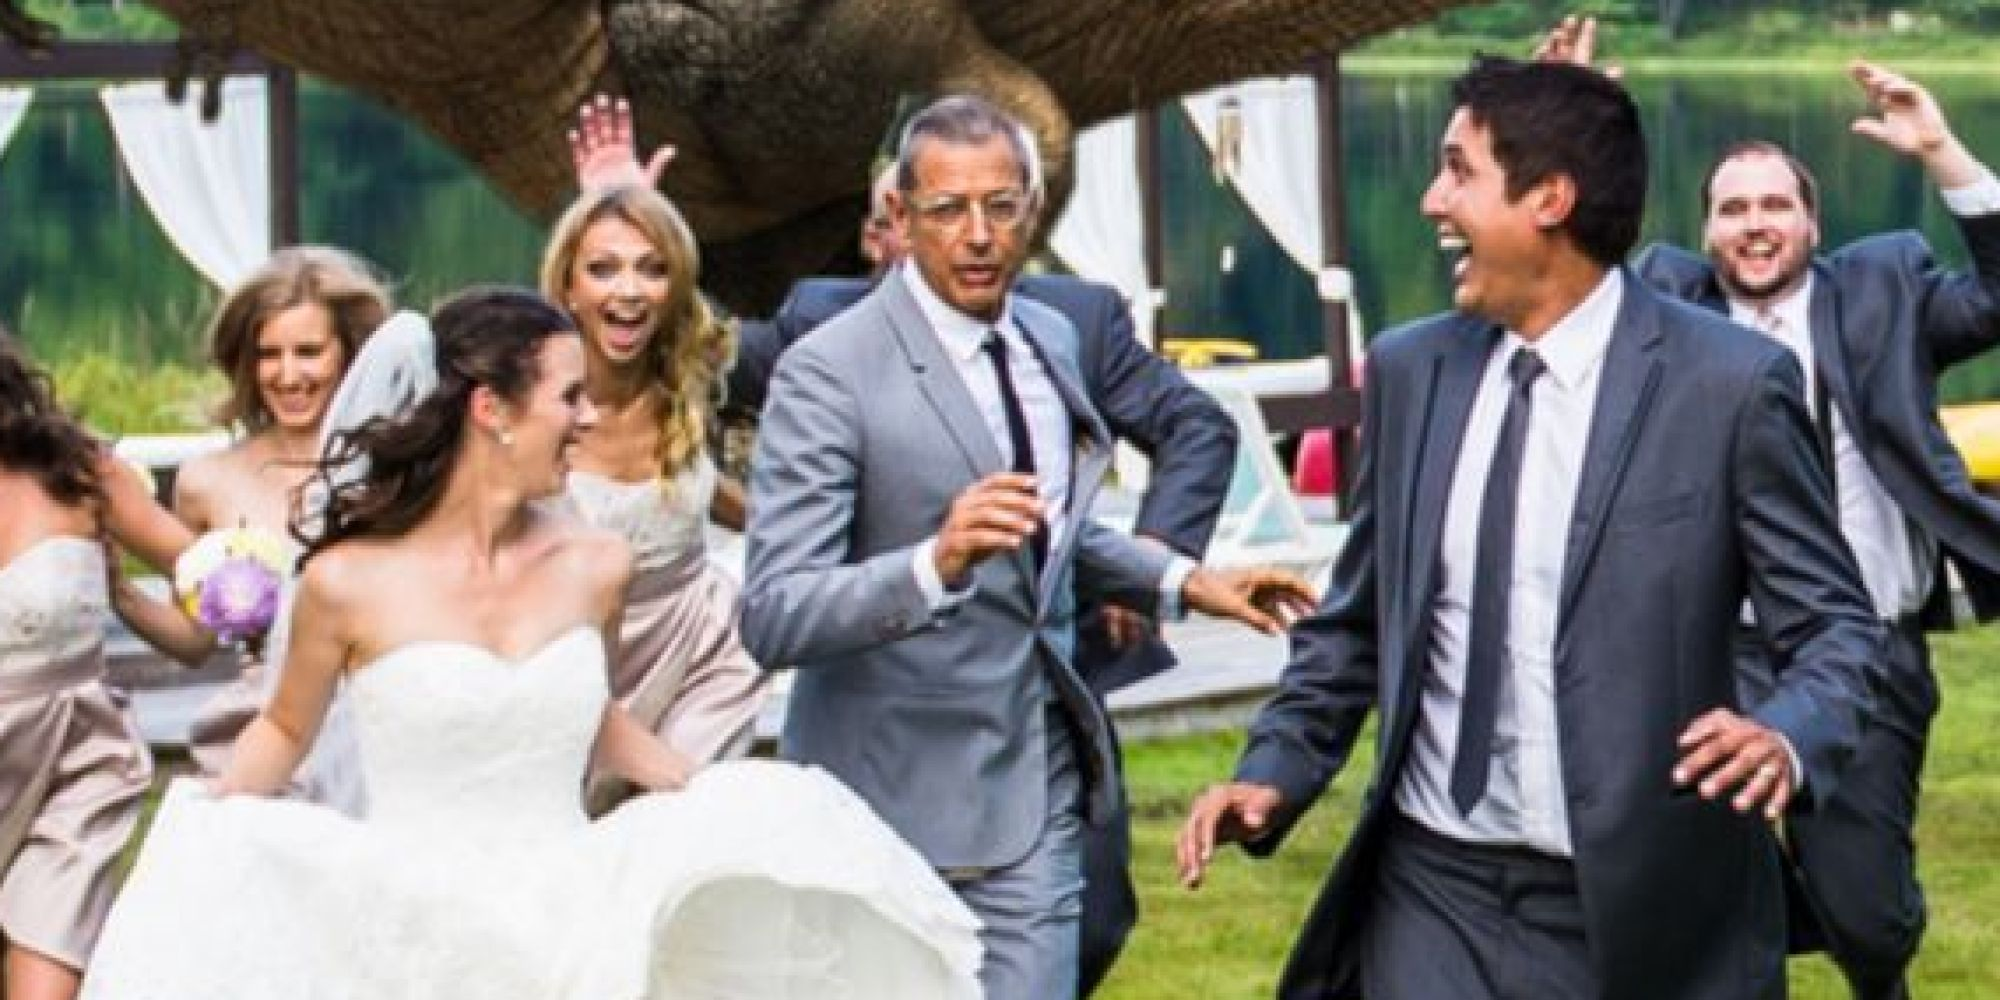 Jeff Goldblum Channels Jurassic Park For Epic Wedding Photo